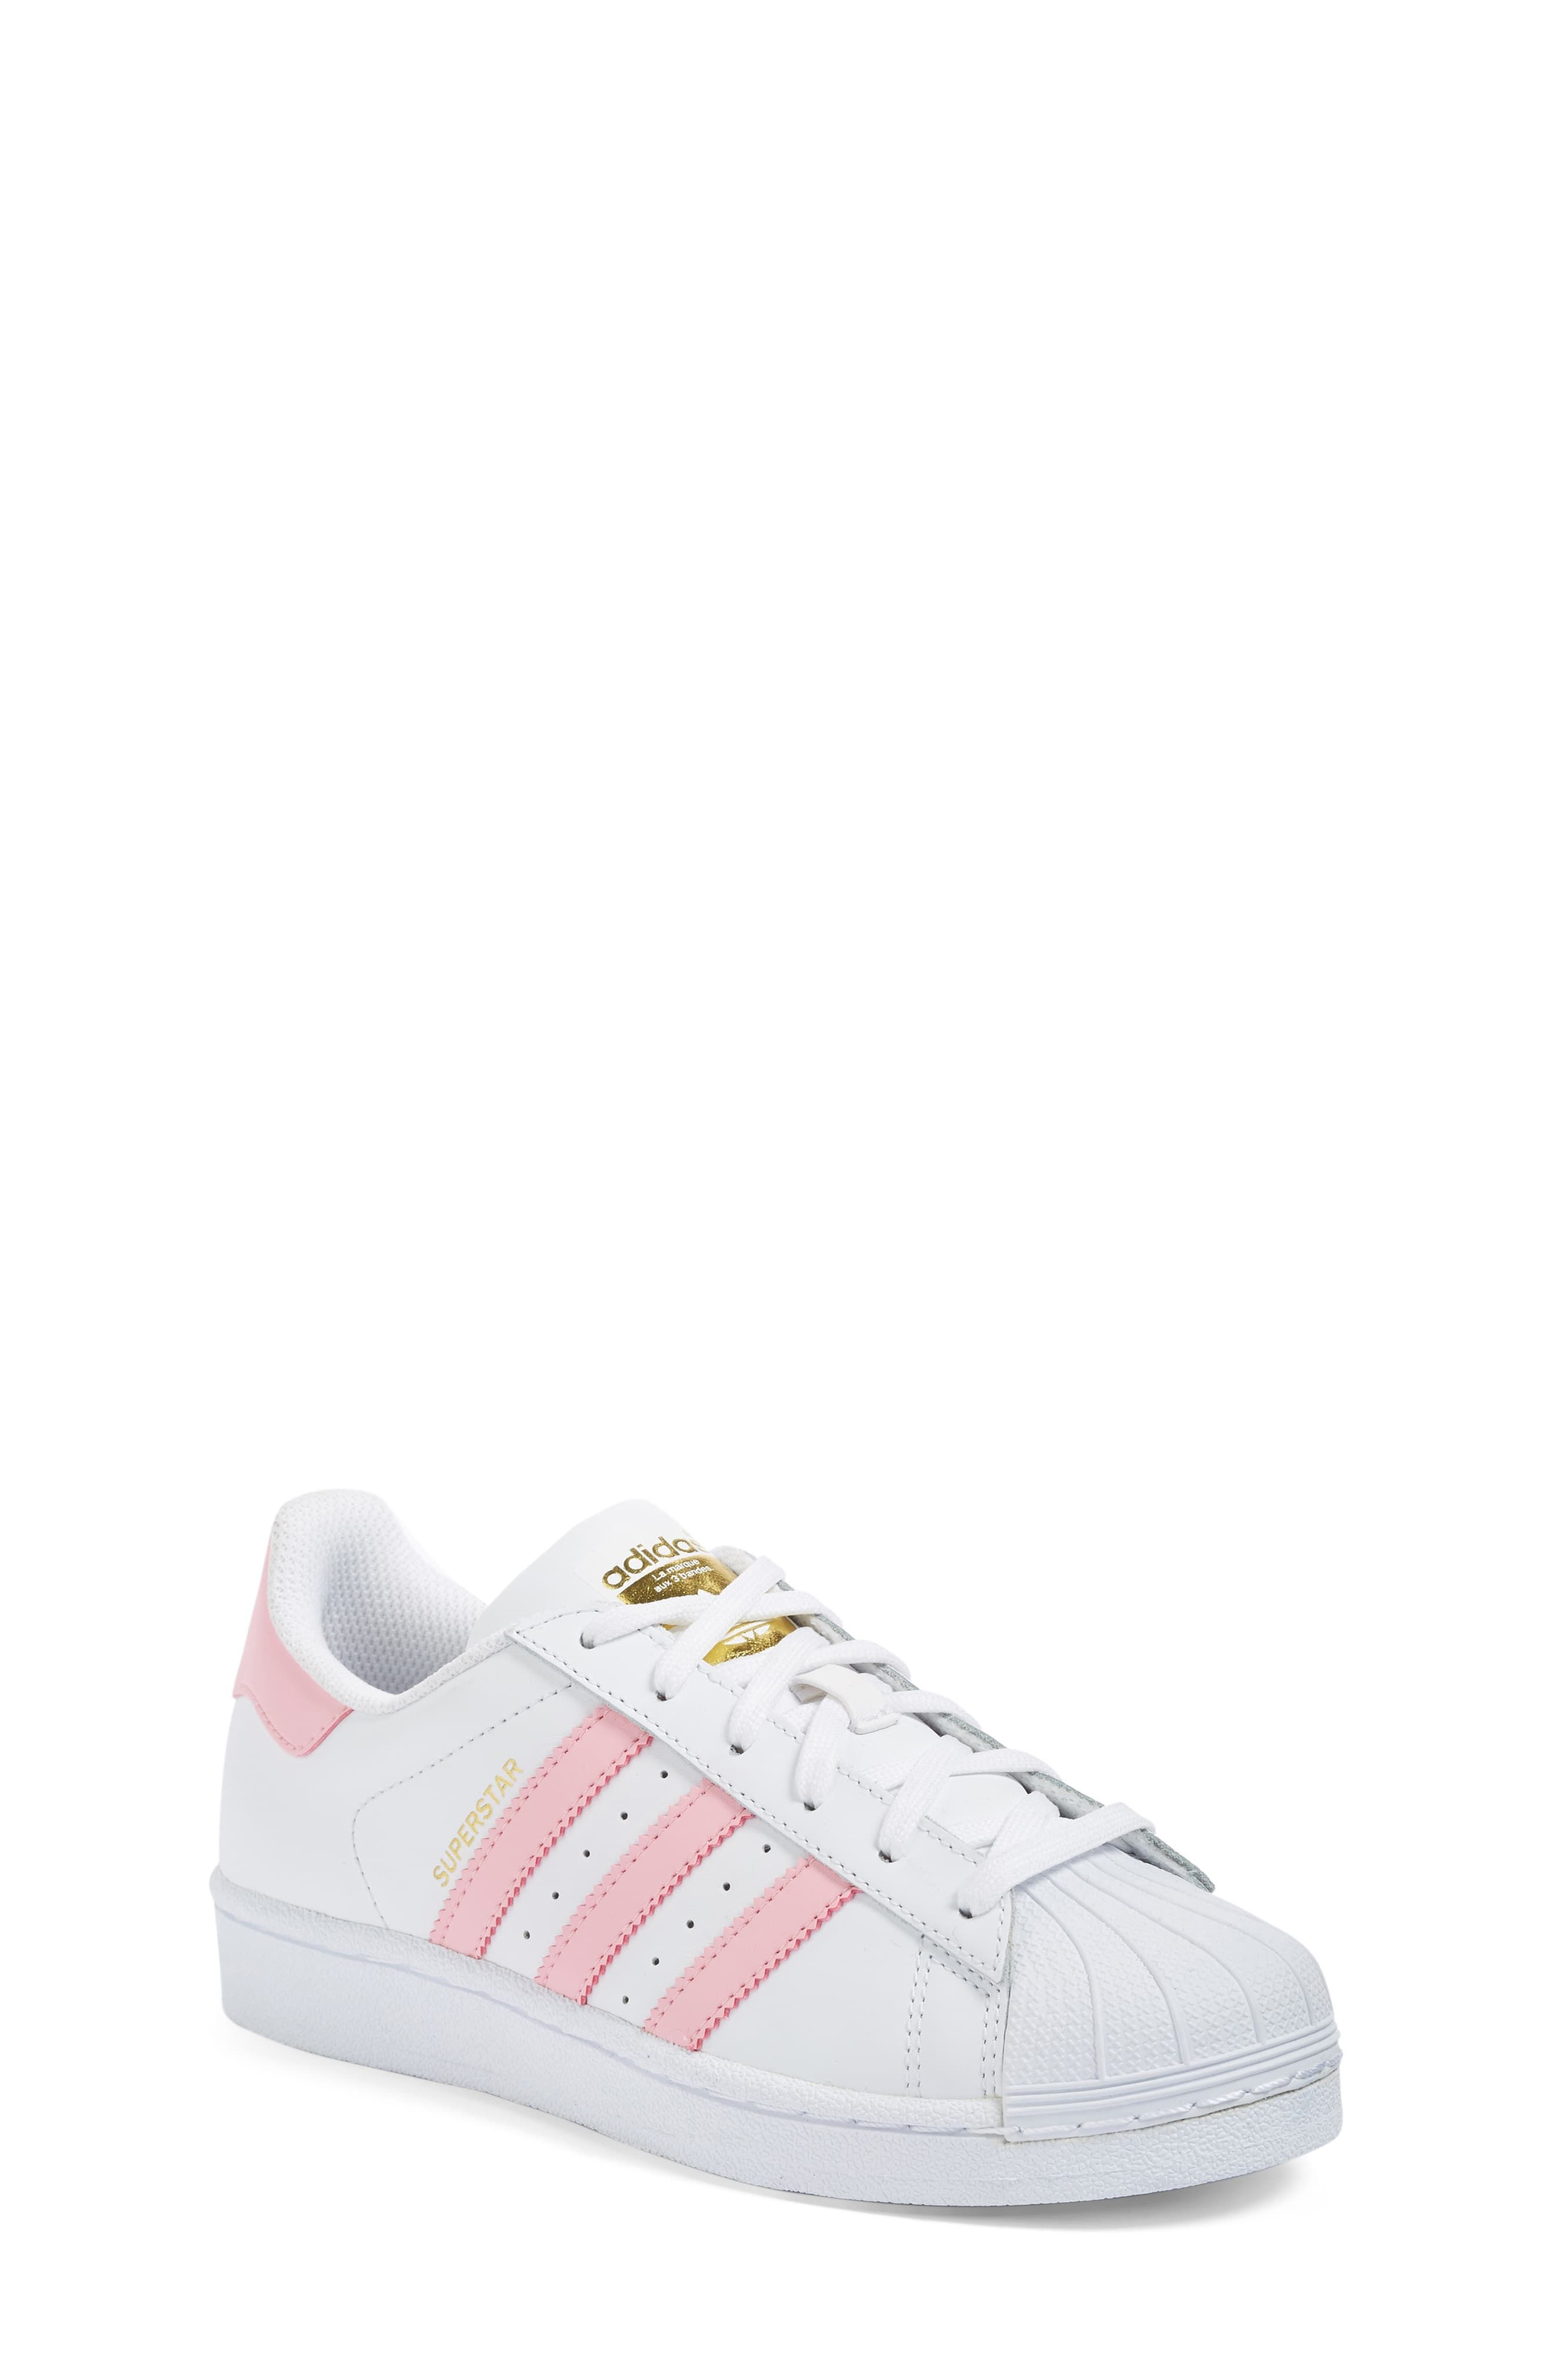 adidas Superstar Foundation Sneaker (Toddler, Little Kid